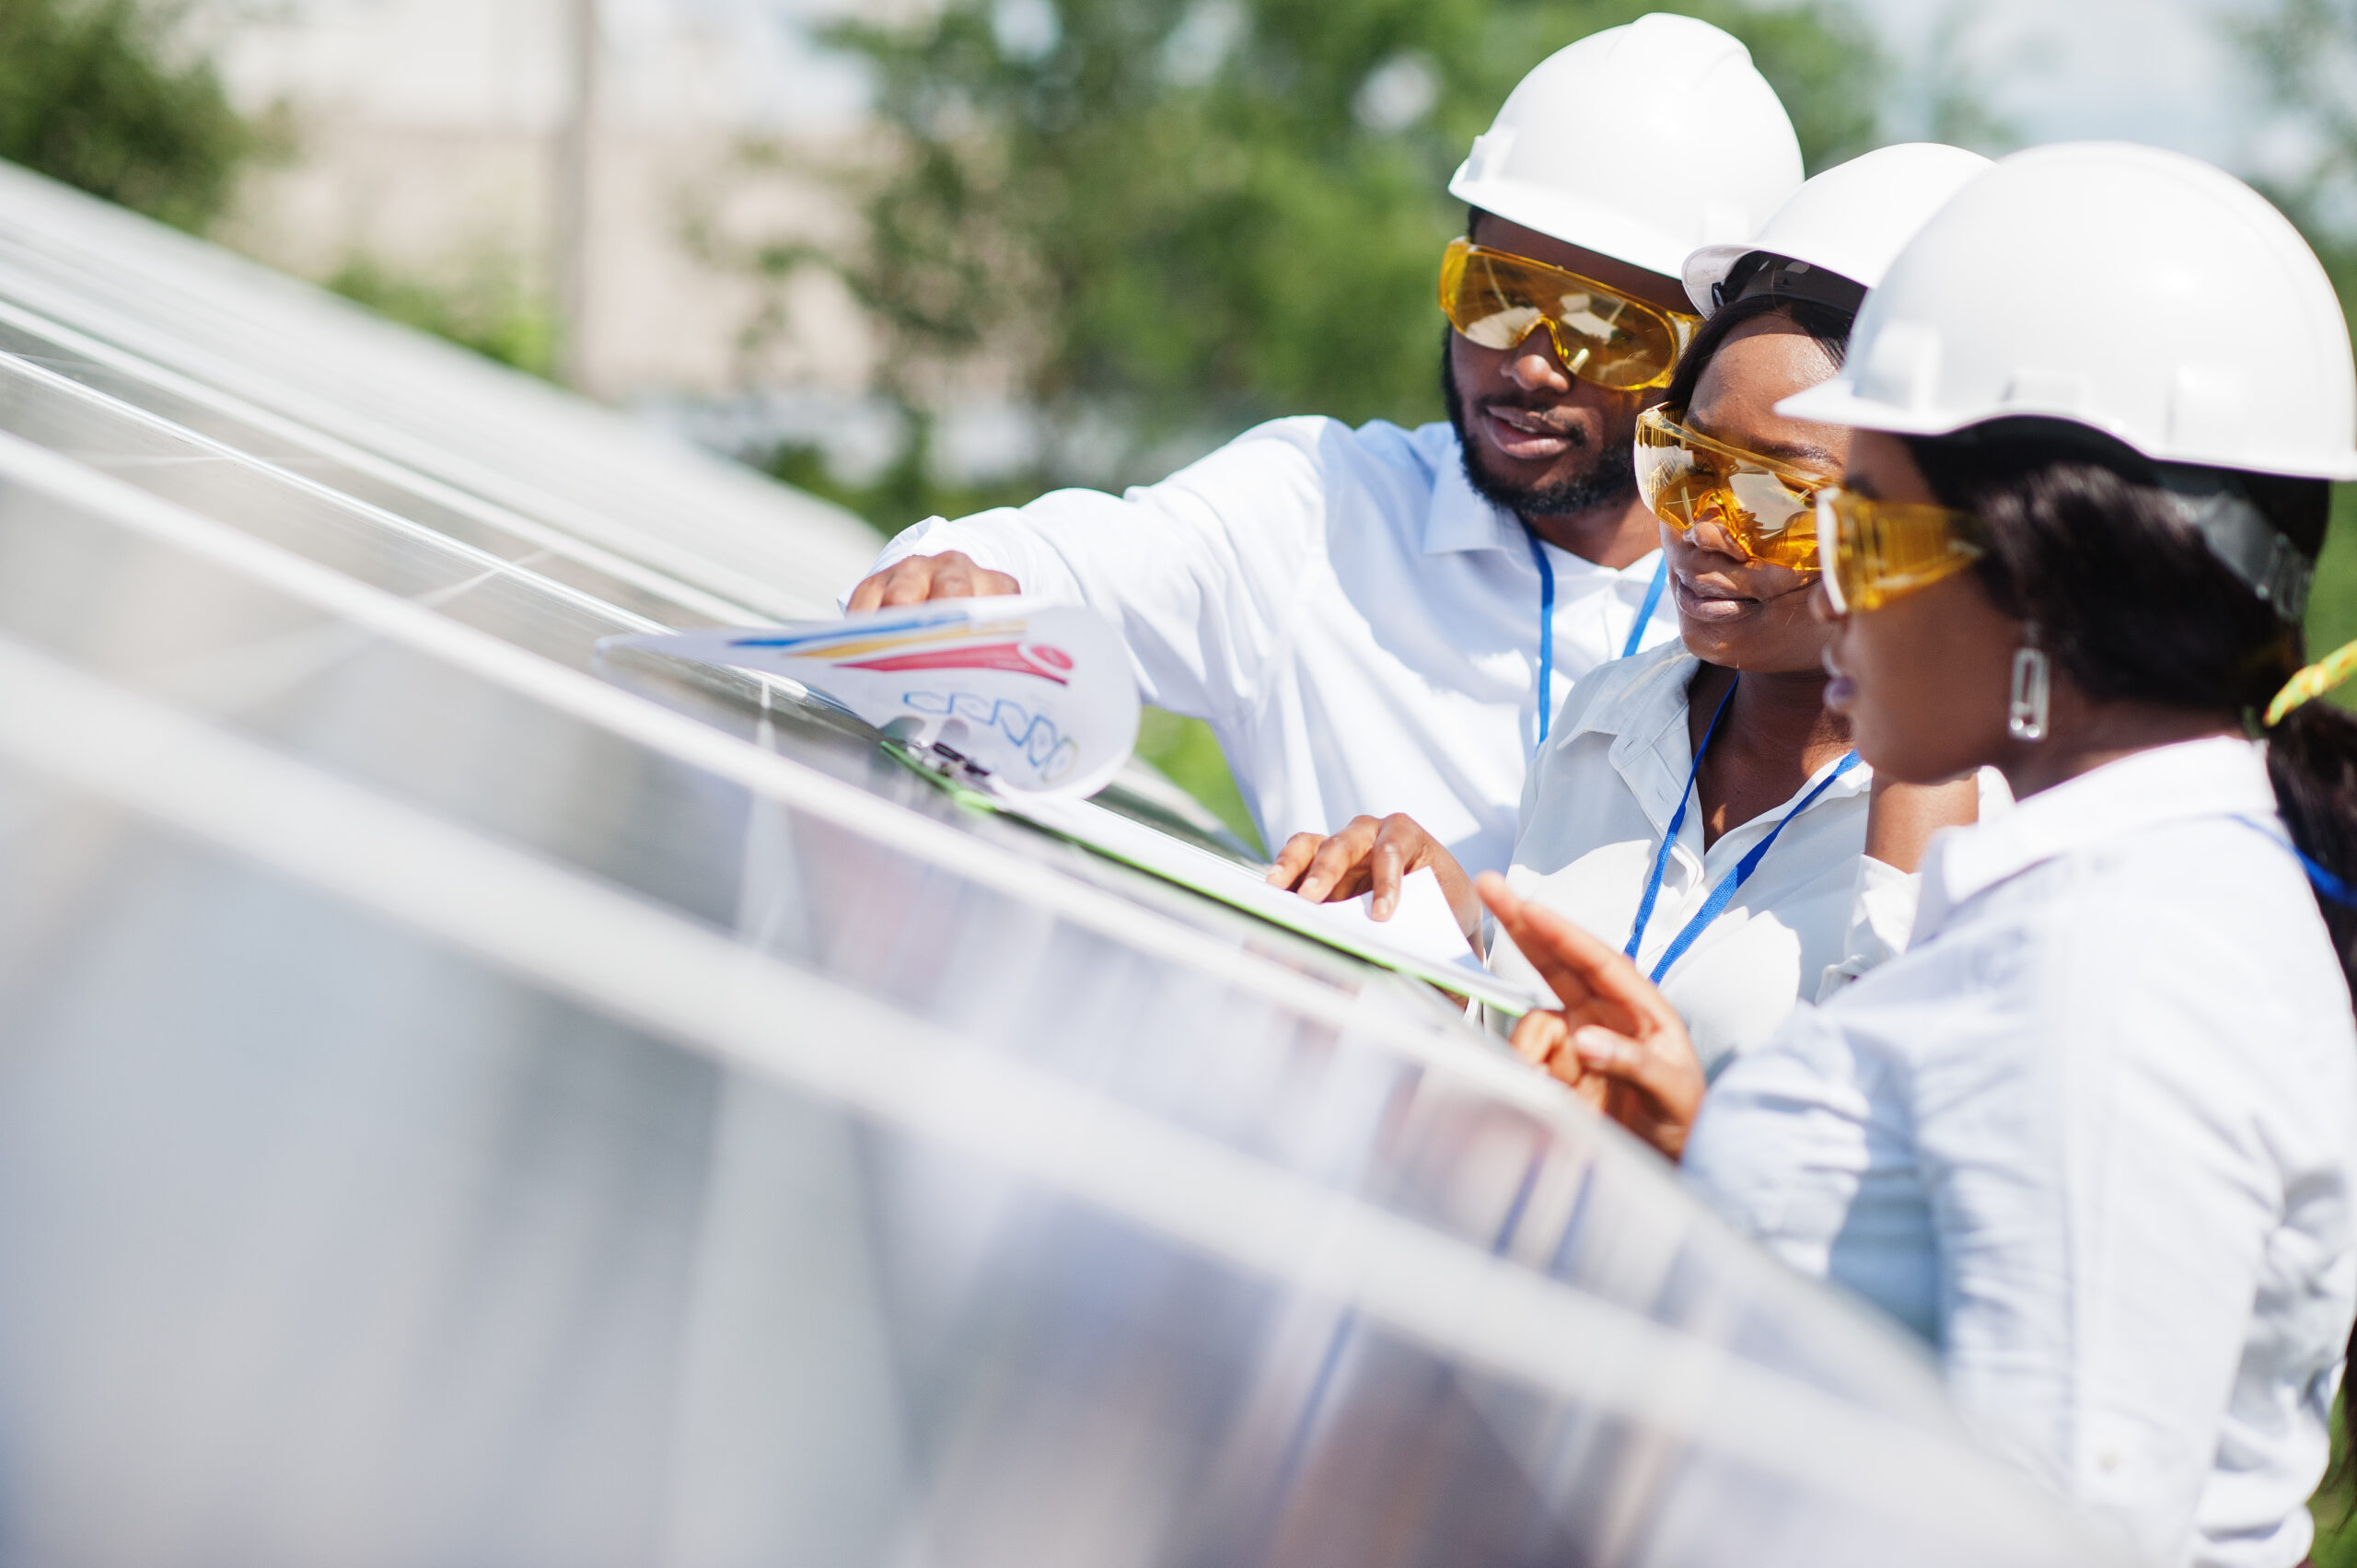 Three people wearing protective equipment standing near a solar panel and looking at some paperwork.